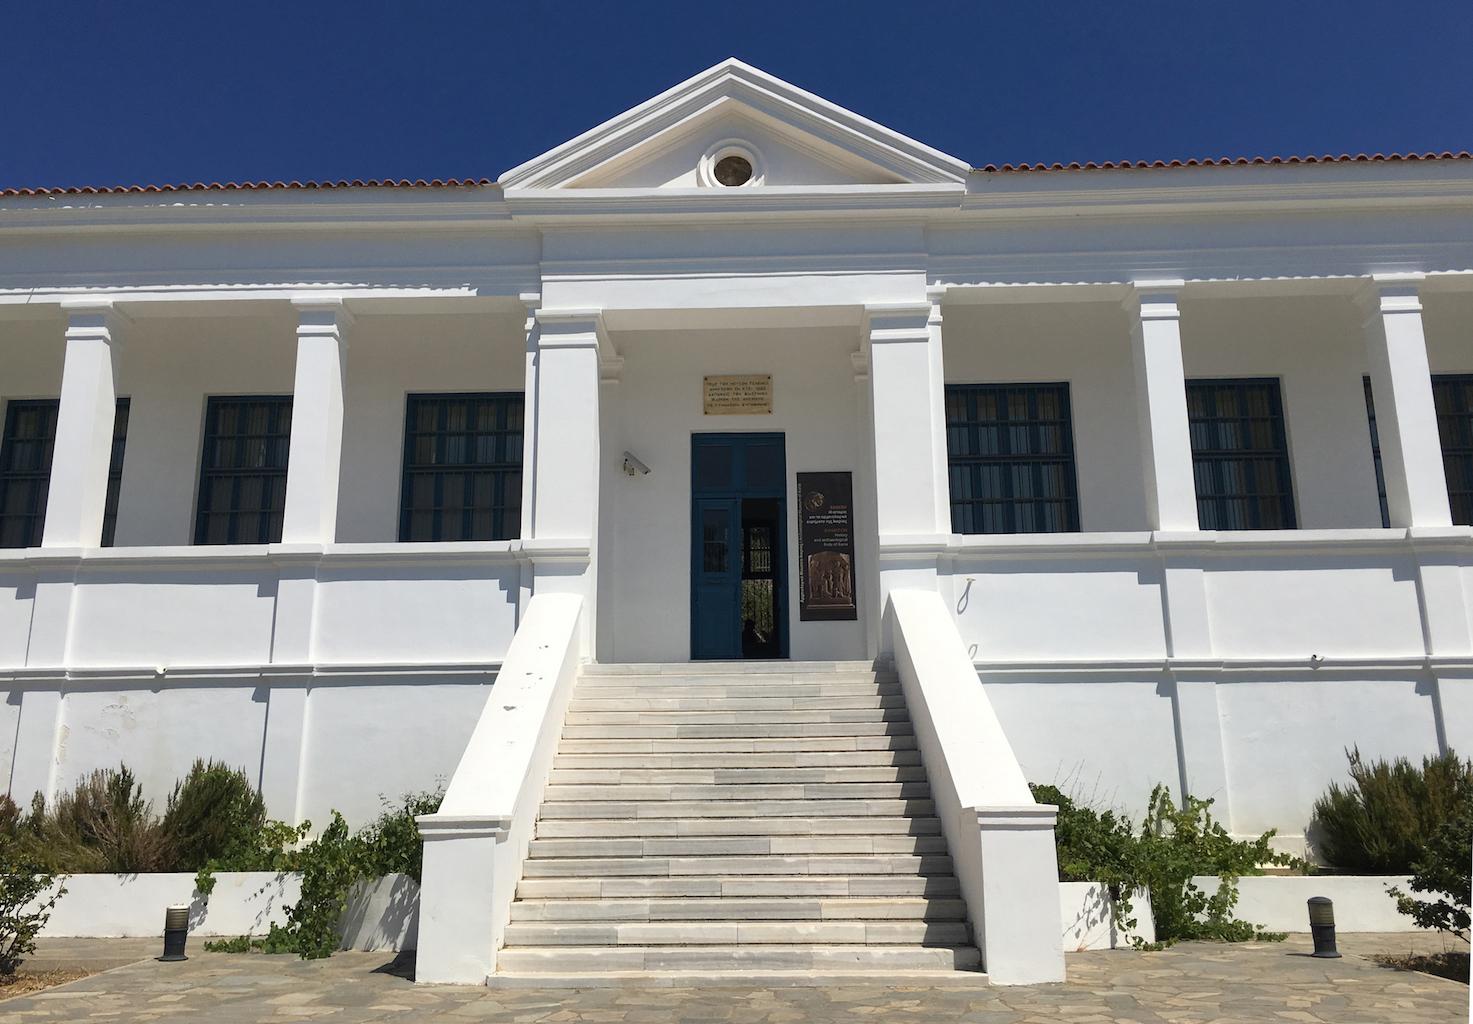 The new Archaeological Museum of Ikaria